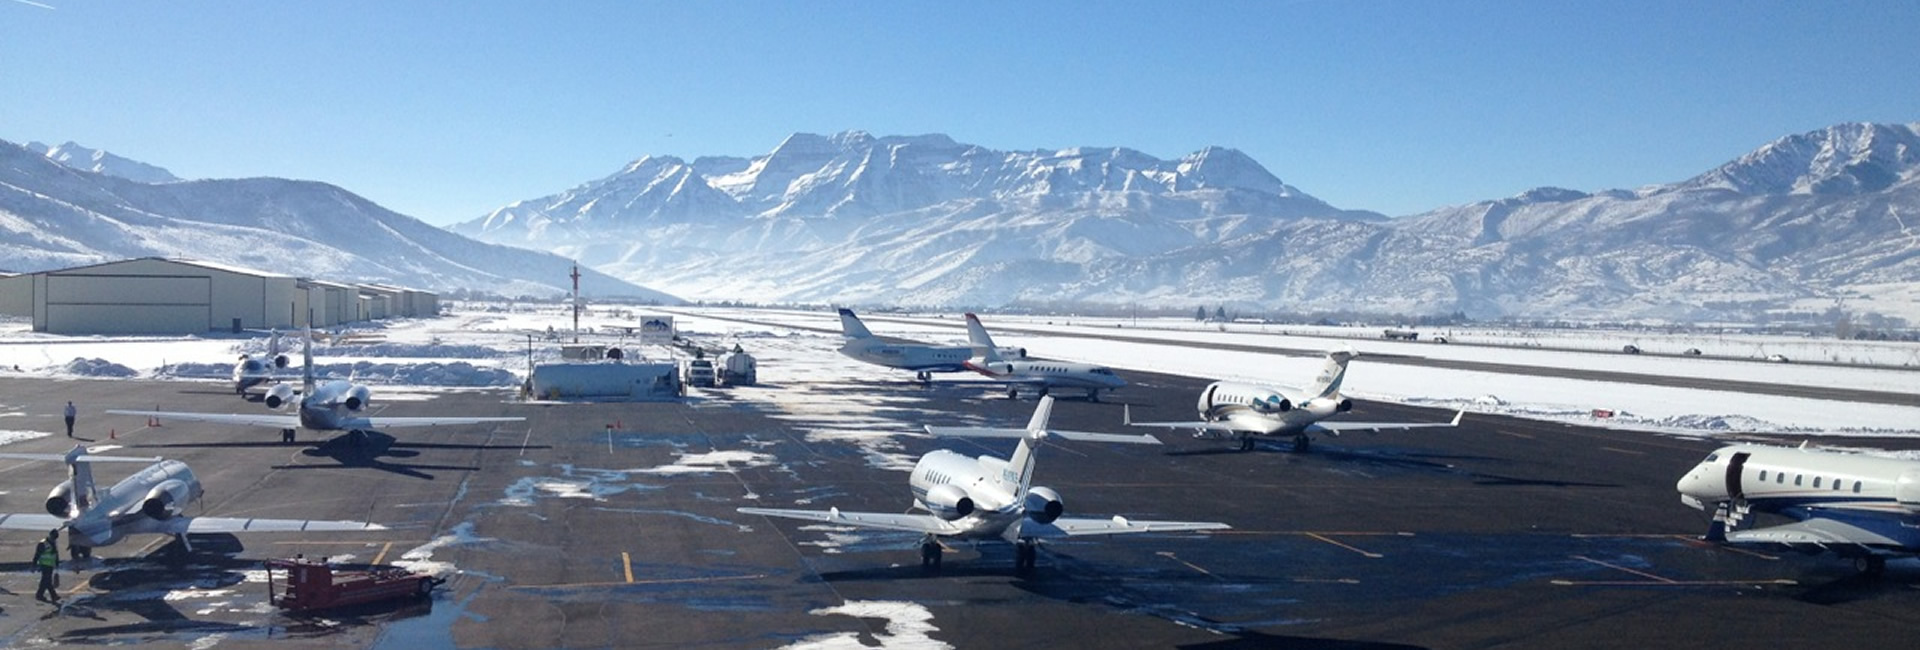 Heber Valley Airport | Russ McDonald Field | Park City, Utah